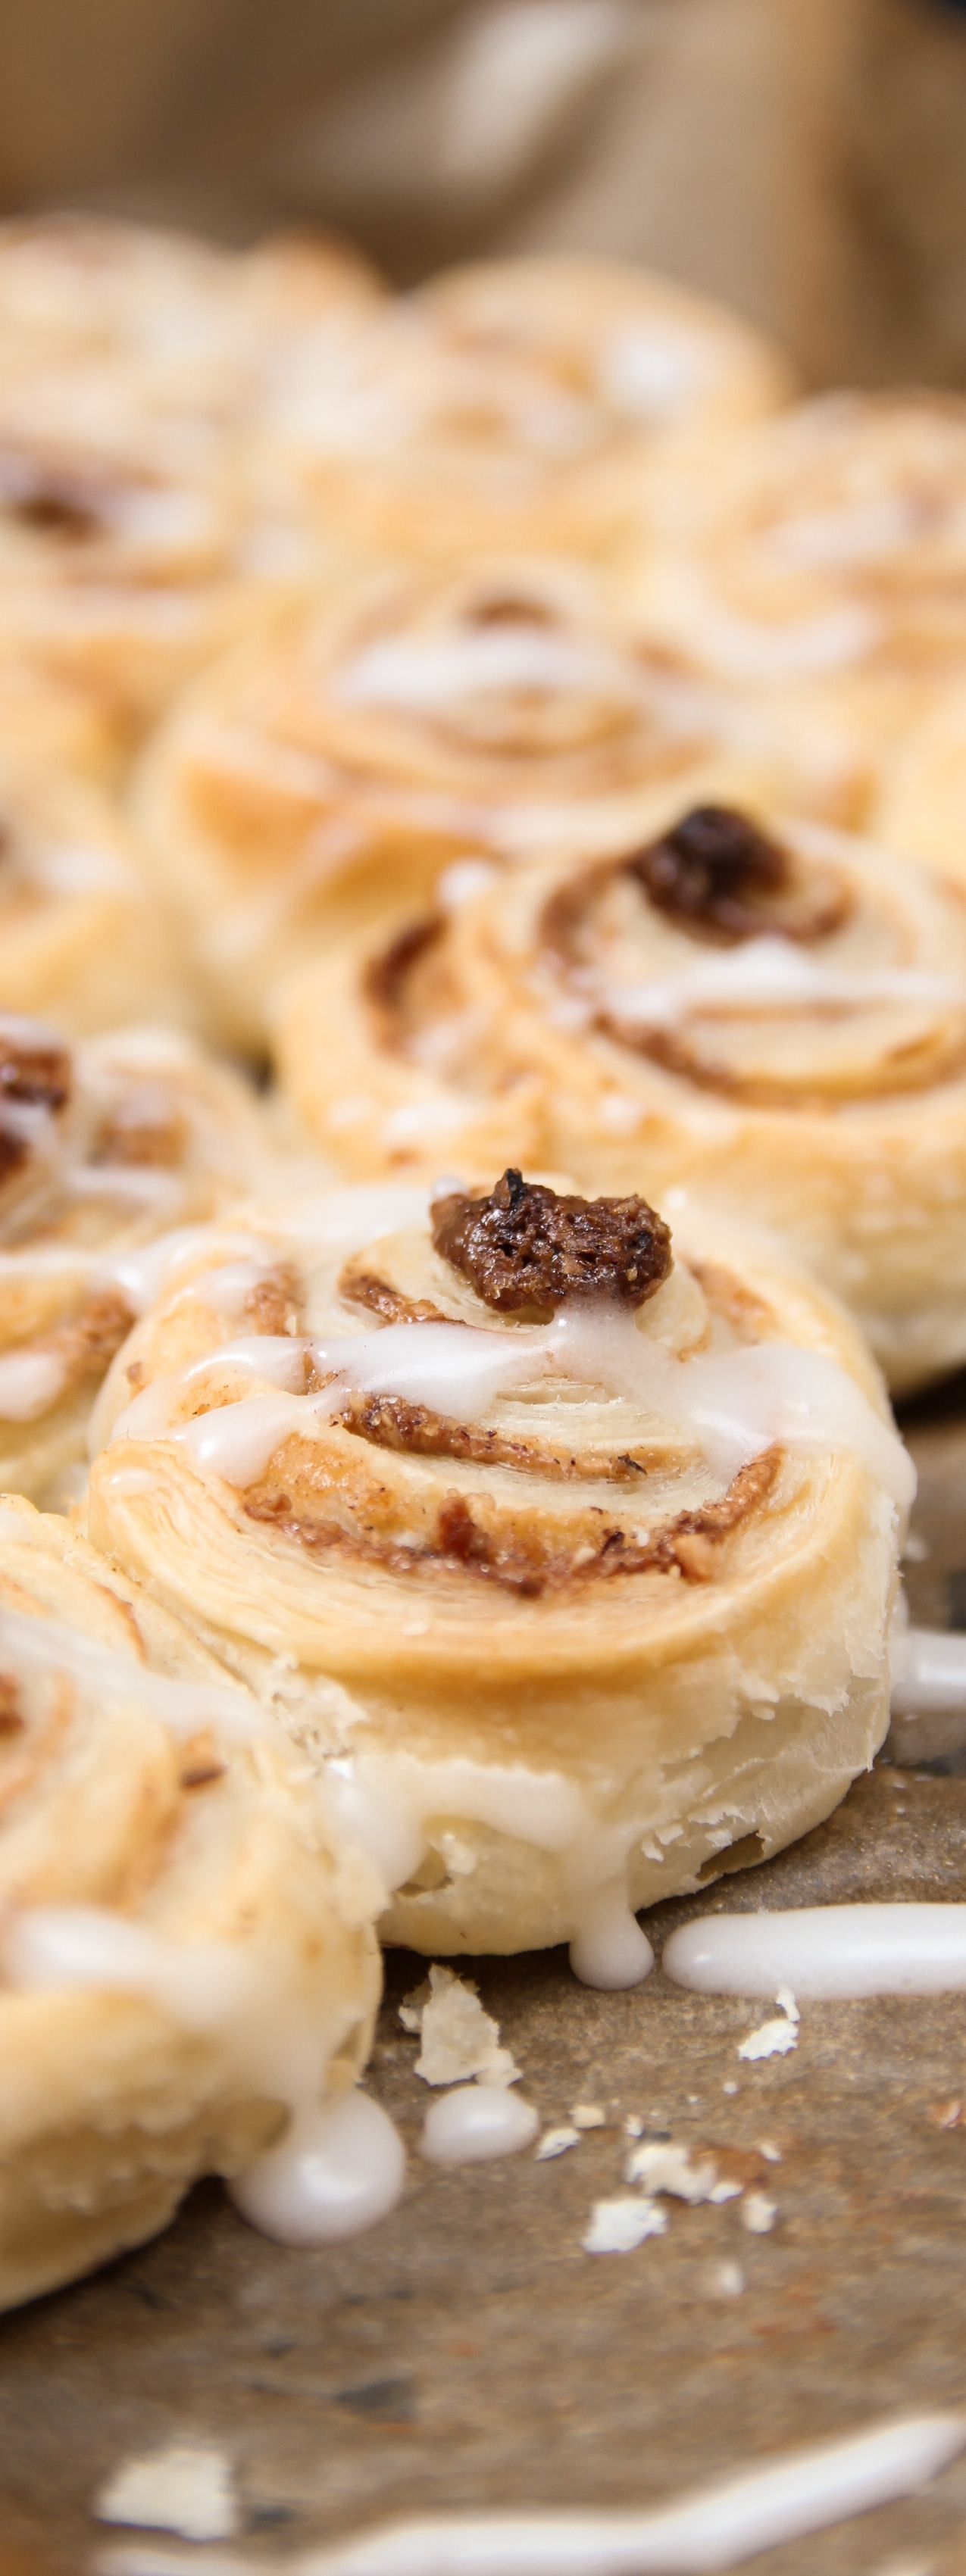 Photo of Puff pastry cinnamon buns Filizity.com